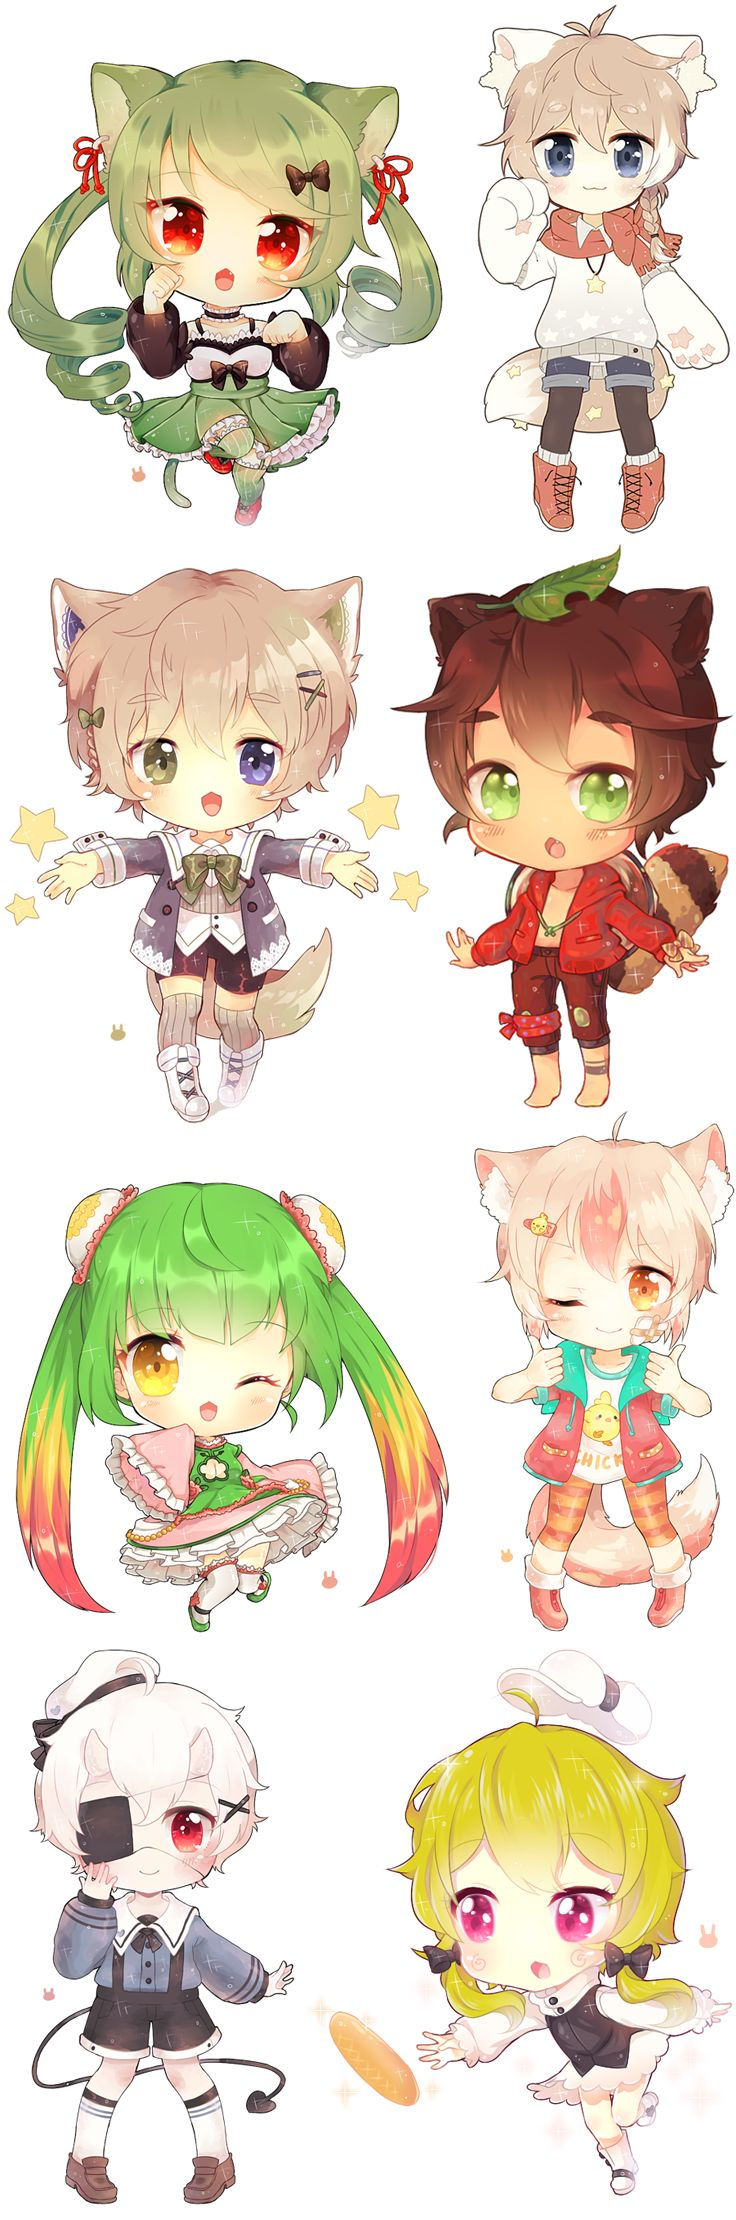 Name and adopt one of these cuties! I choose the 1st one in the second row from the left. I'll name him Sai!